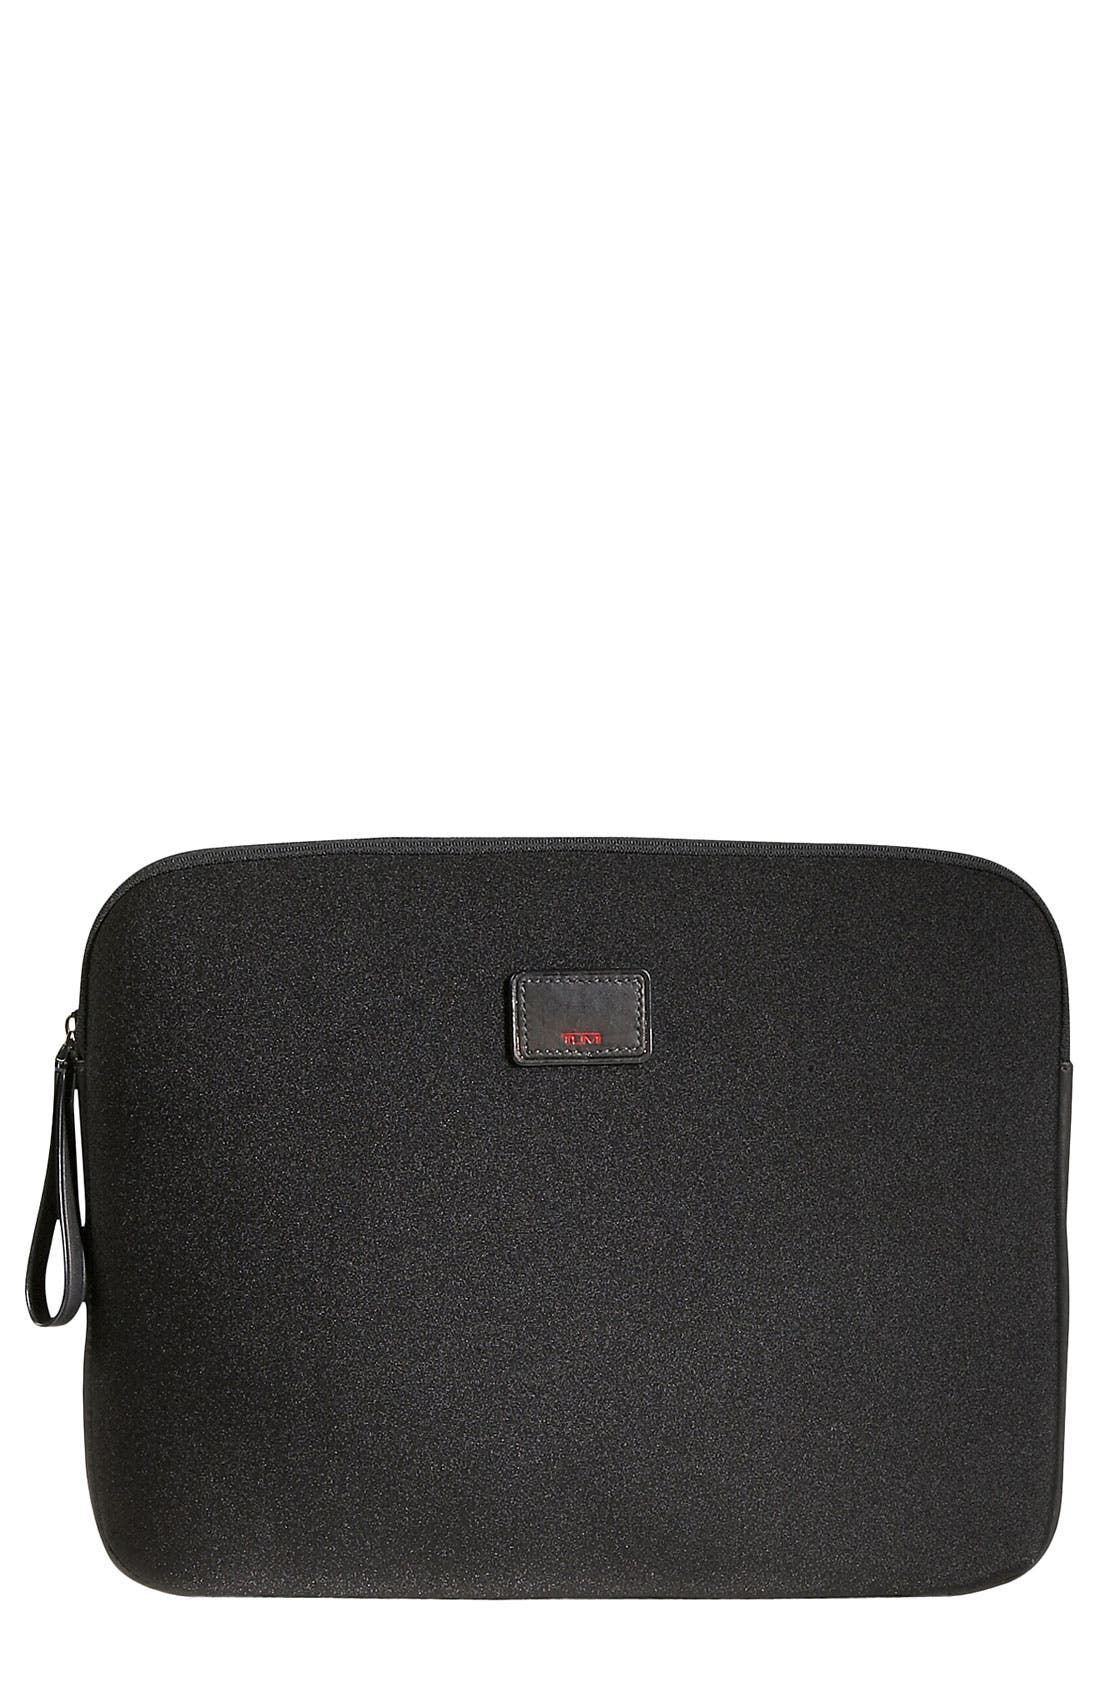 Main Image - Tumi 'Alpha - Small' Laptop Cover